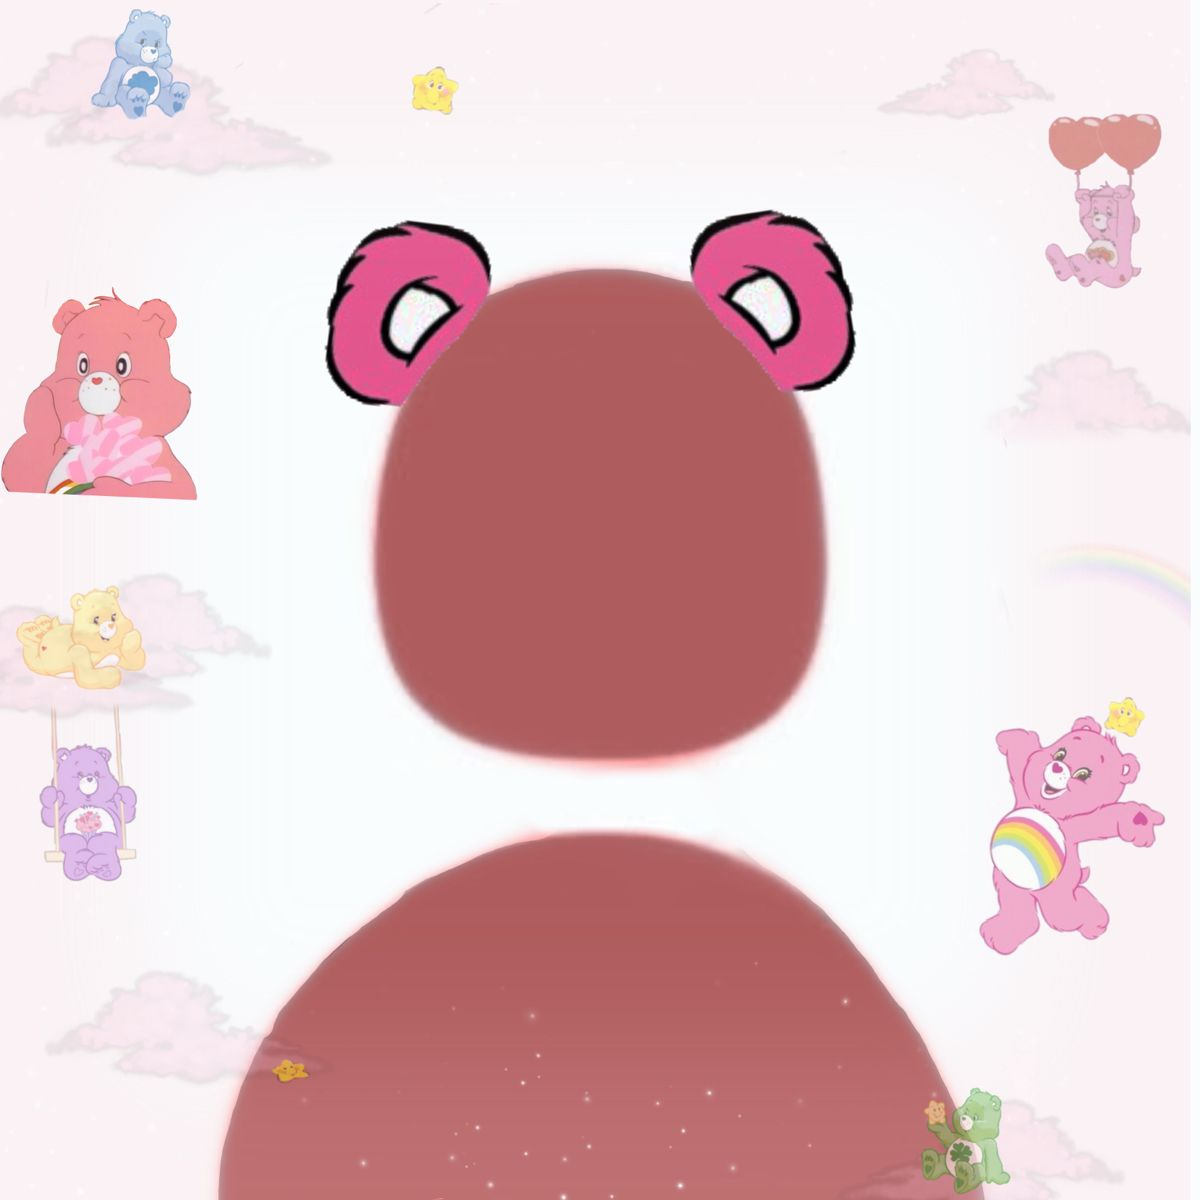 Carebear In 2020 Picture Icon Cute Icons Aesthetic Anime